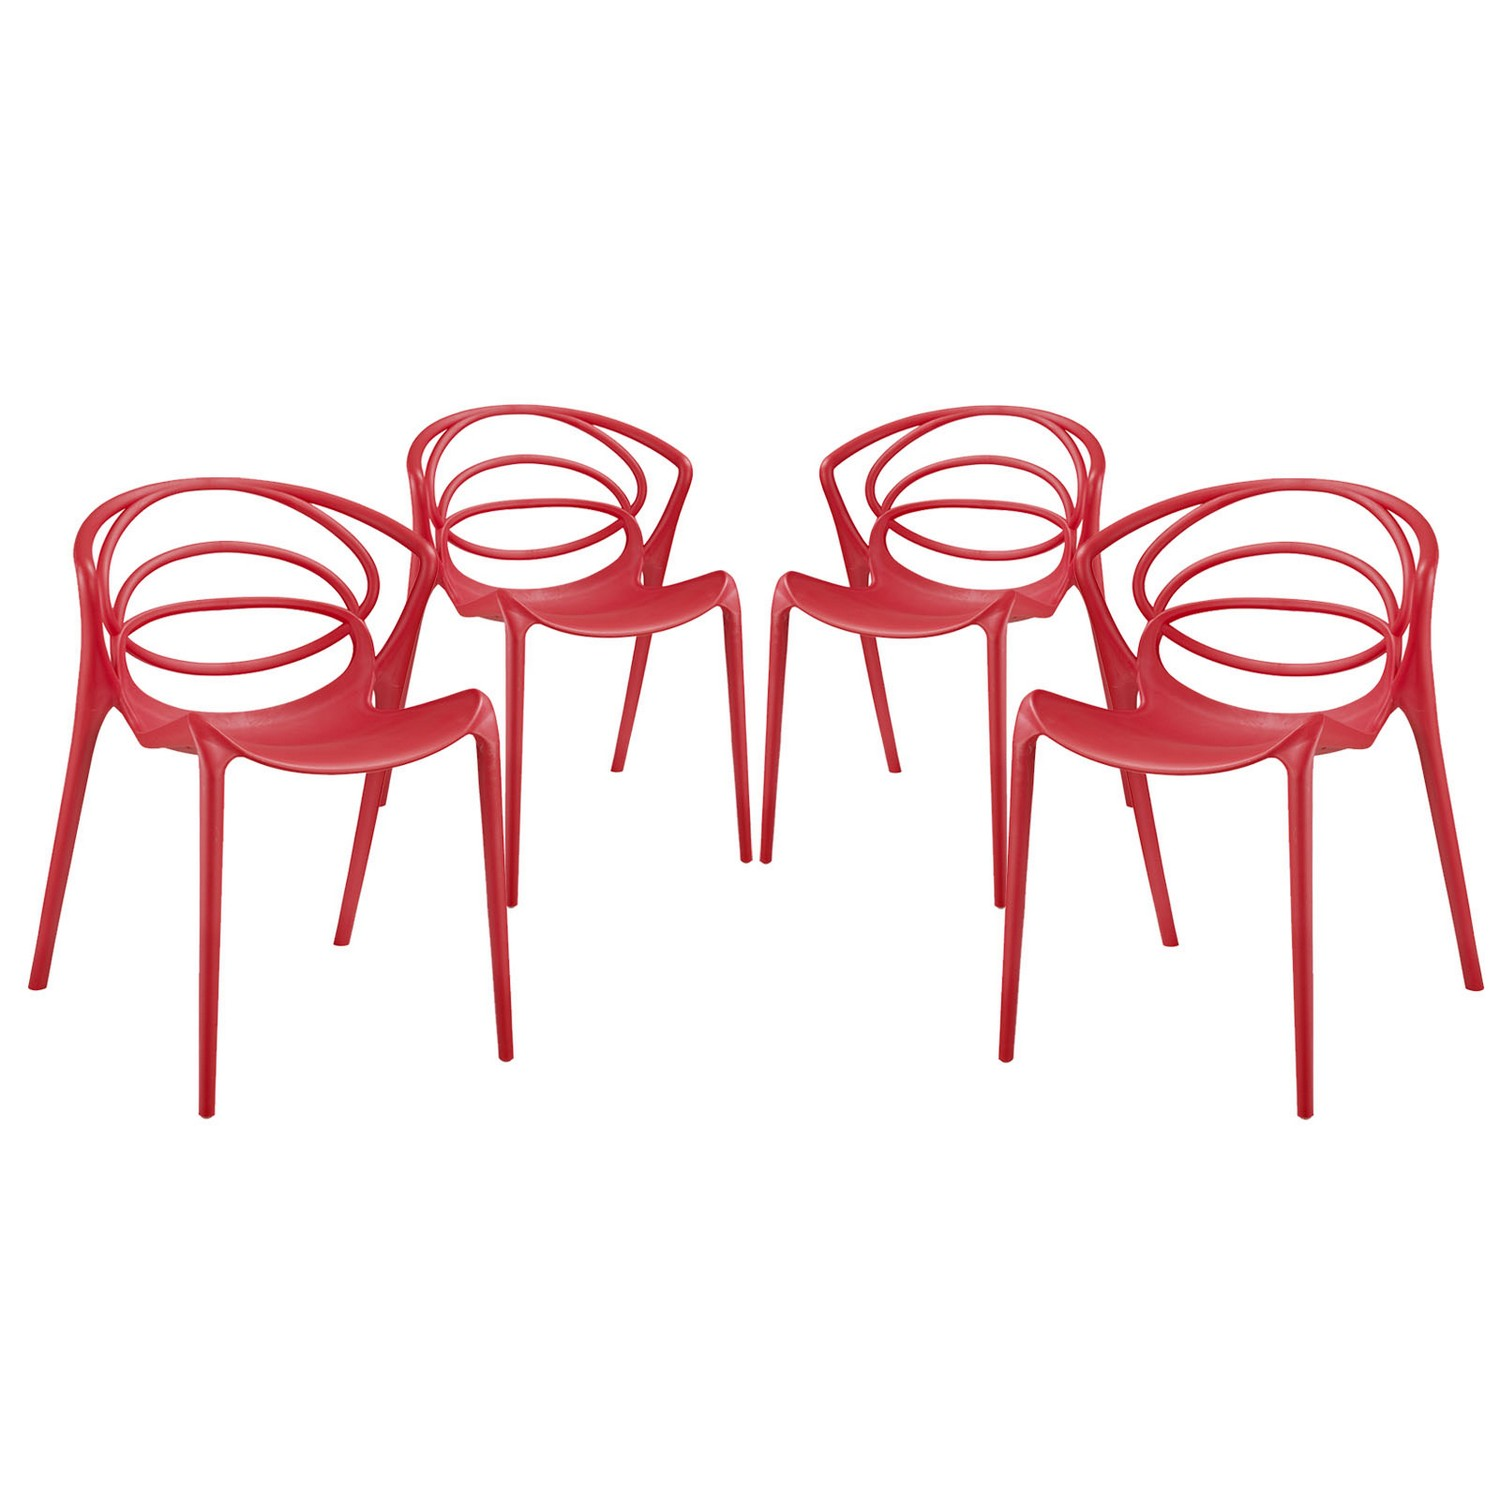 Modway Locus Dining Chair - Set of 4 - Red